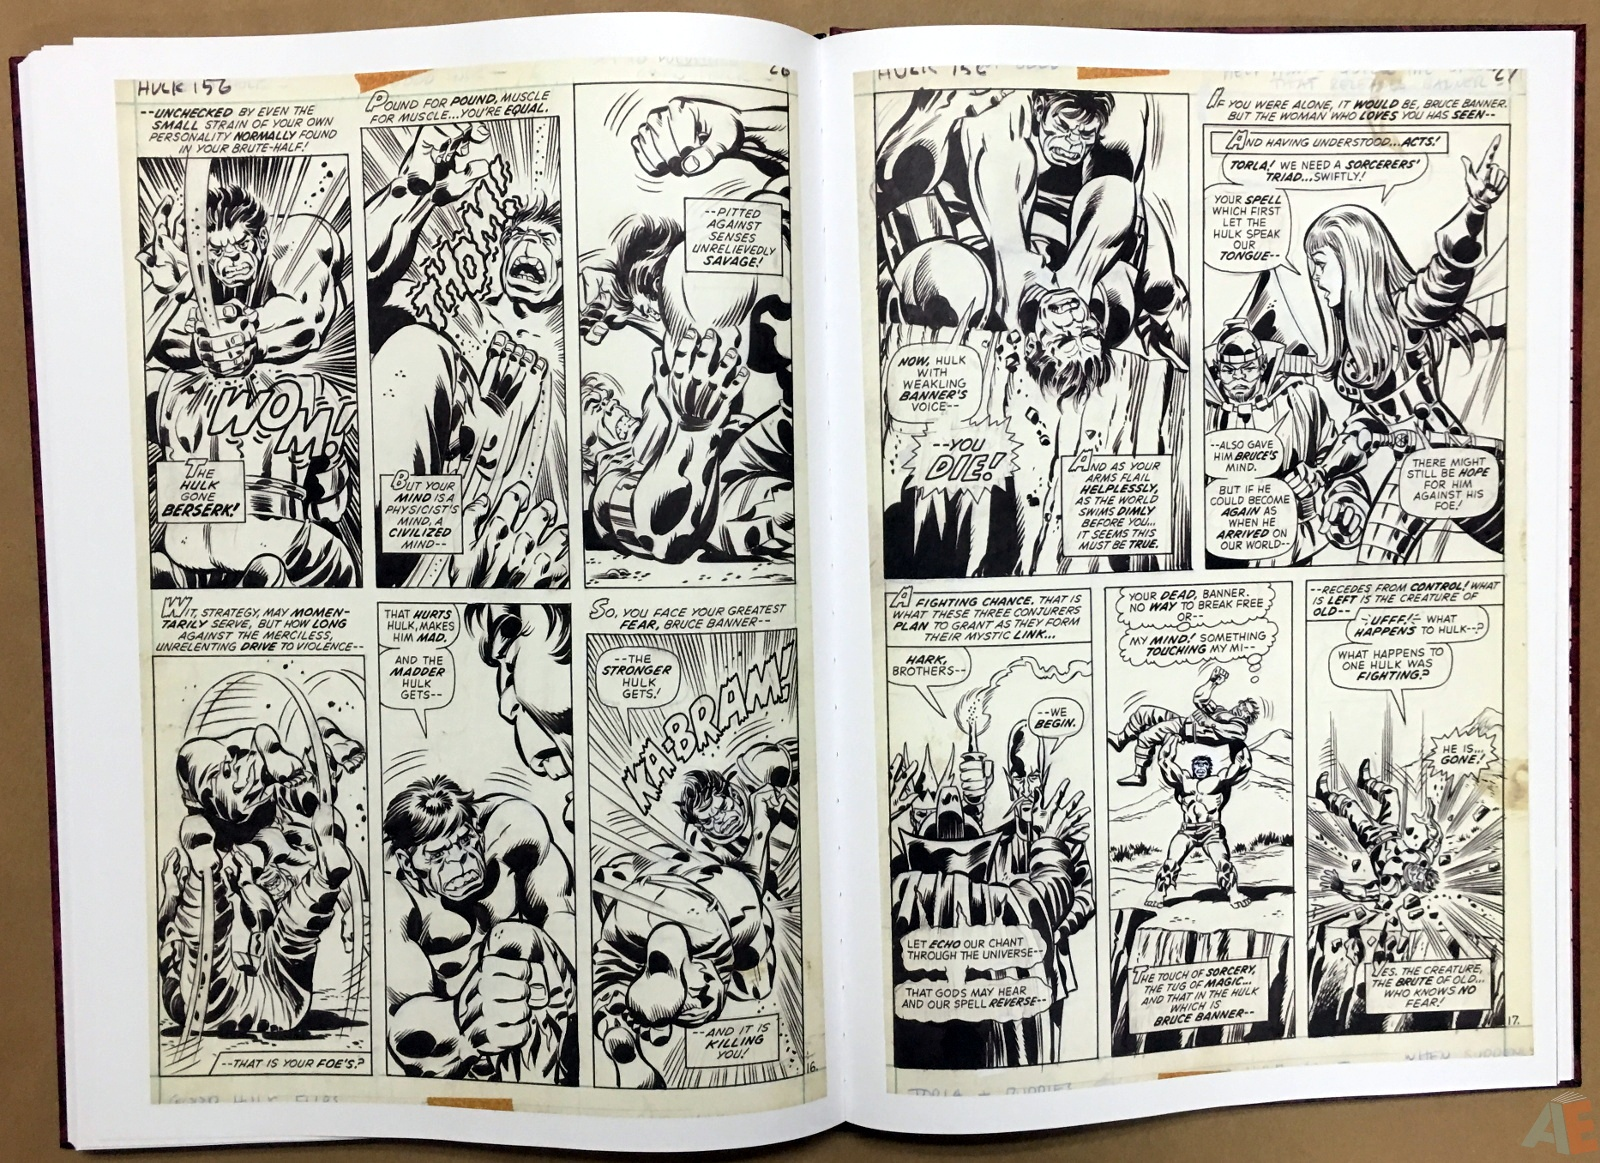 Herb Trimpe's The Incredible Hulk Artist's Edition 40